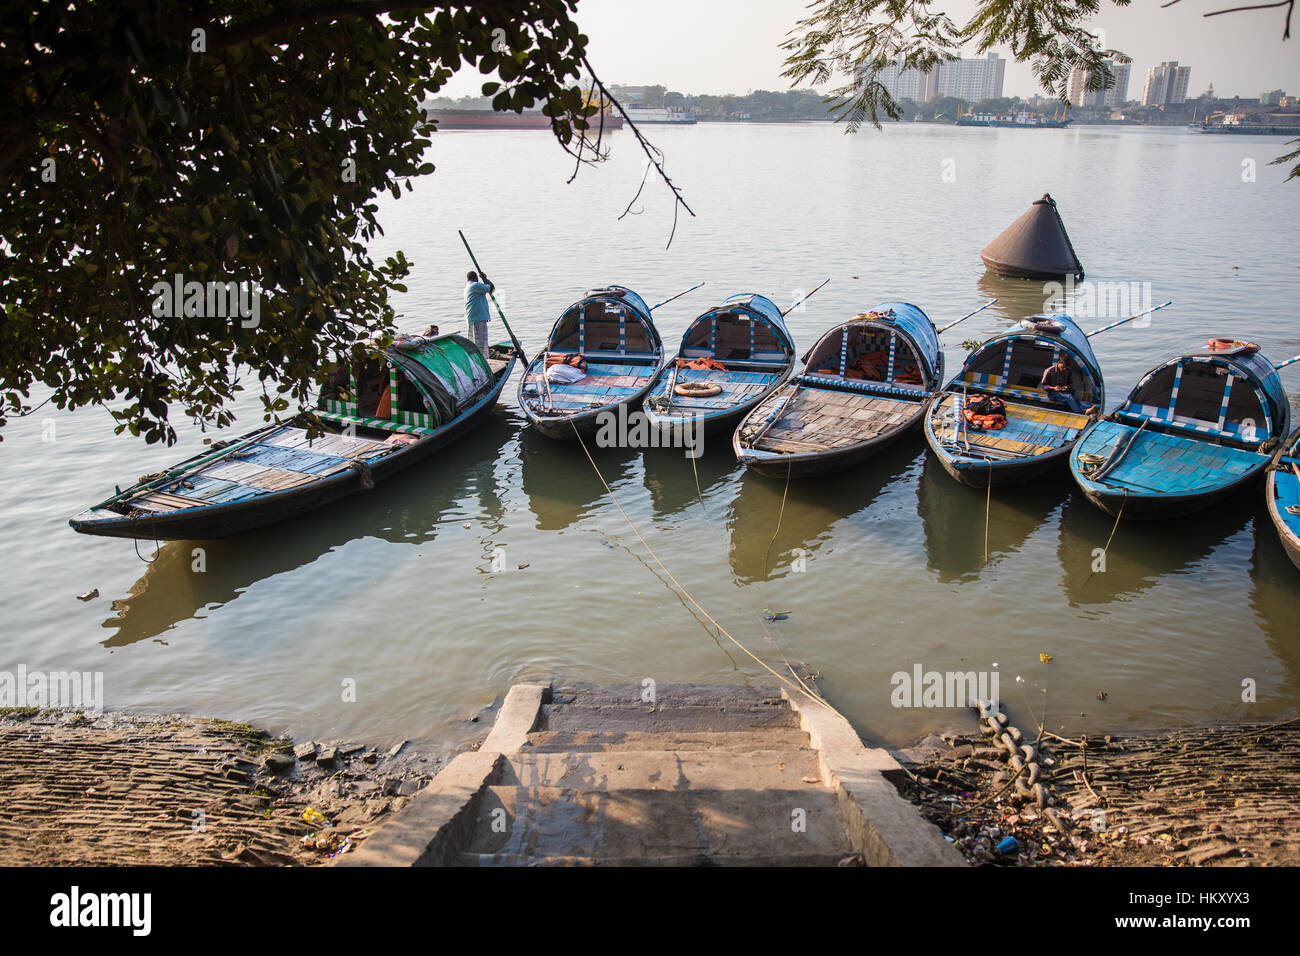 Boats on the Hooghly River in Kolkata (Calcutta), West Bengal, India. - Stock Image